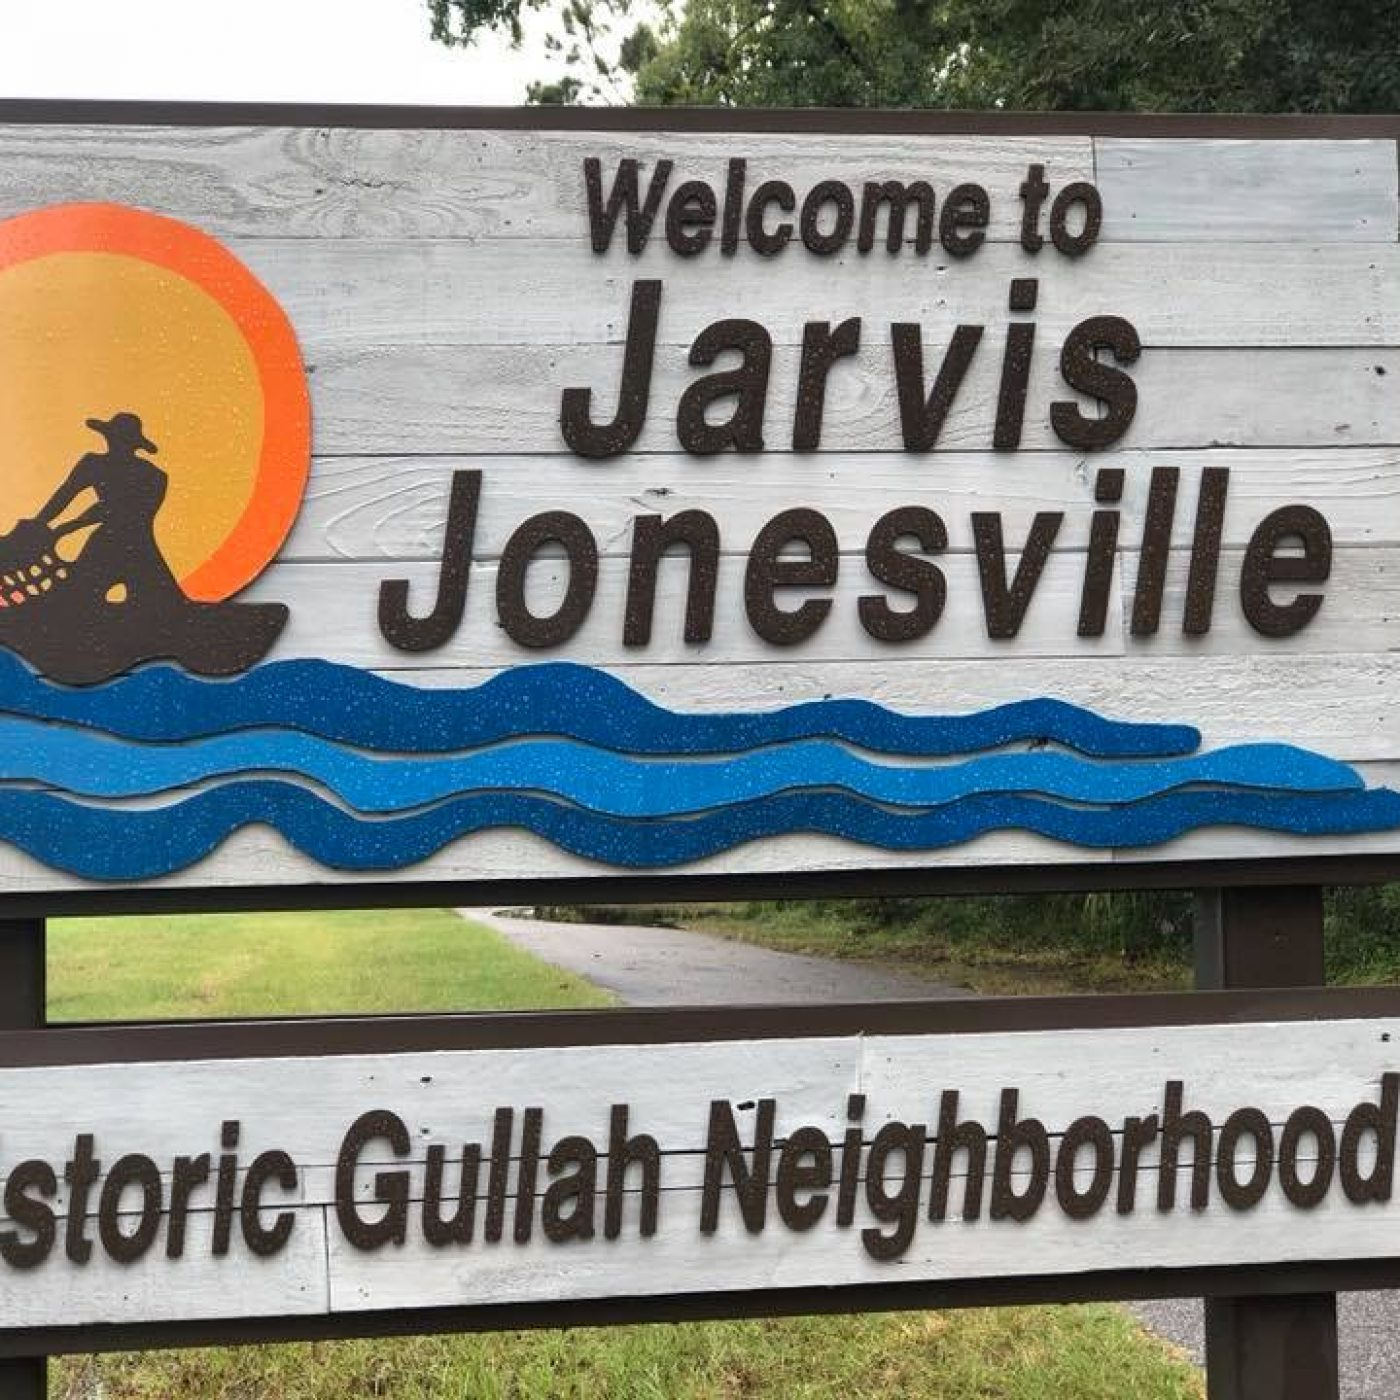 Historic Gullah Neighborhood sign